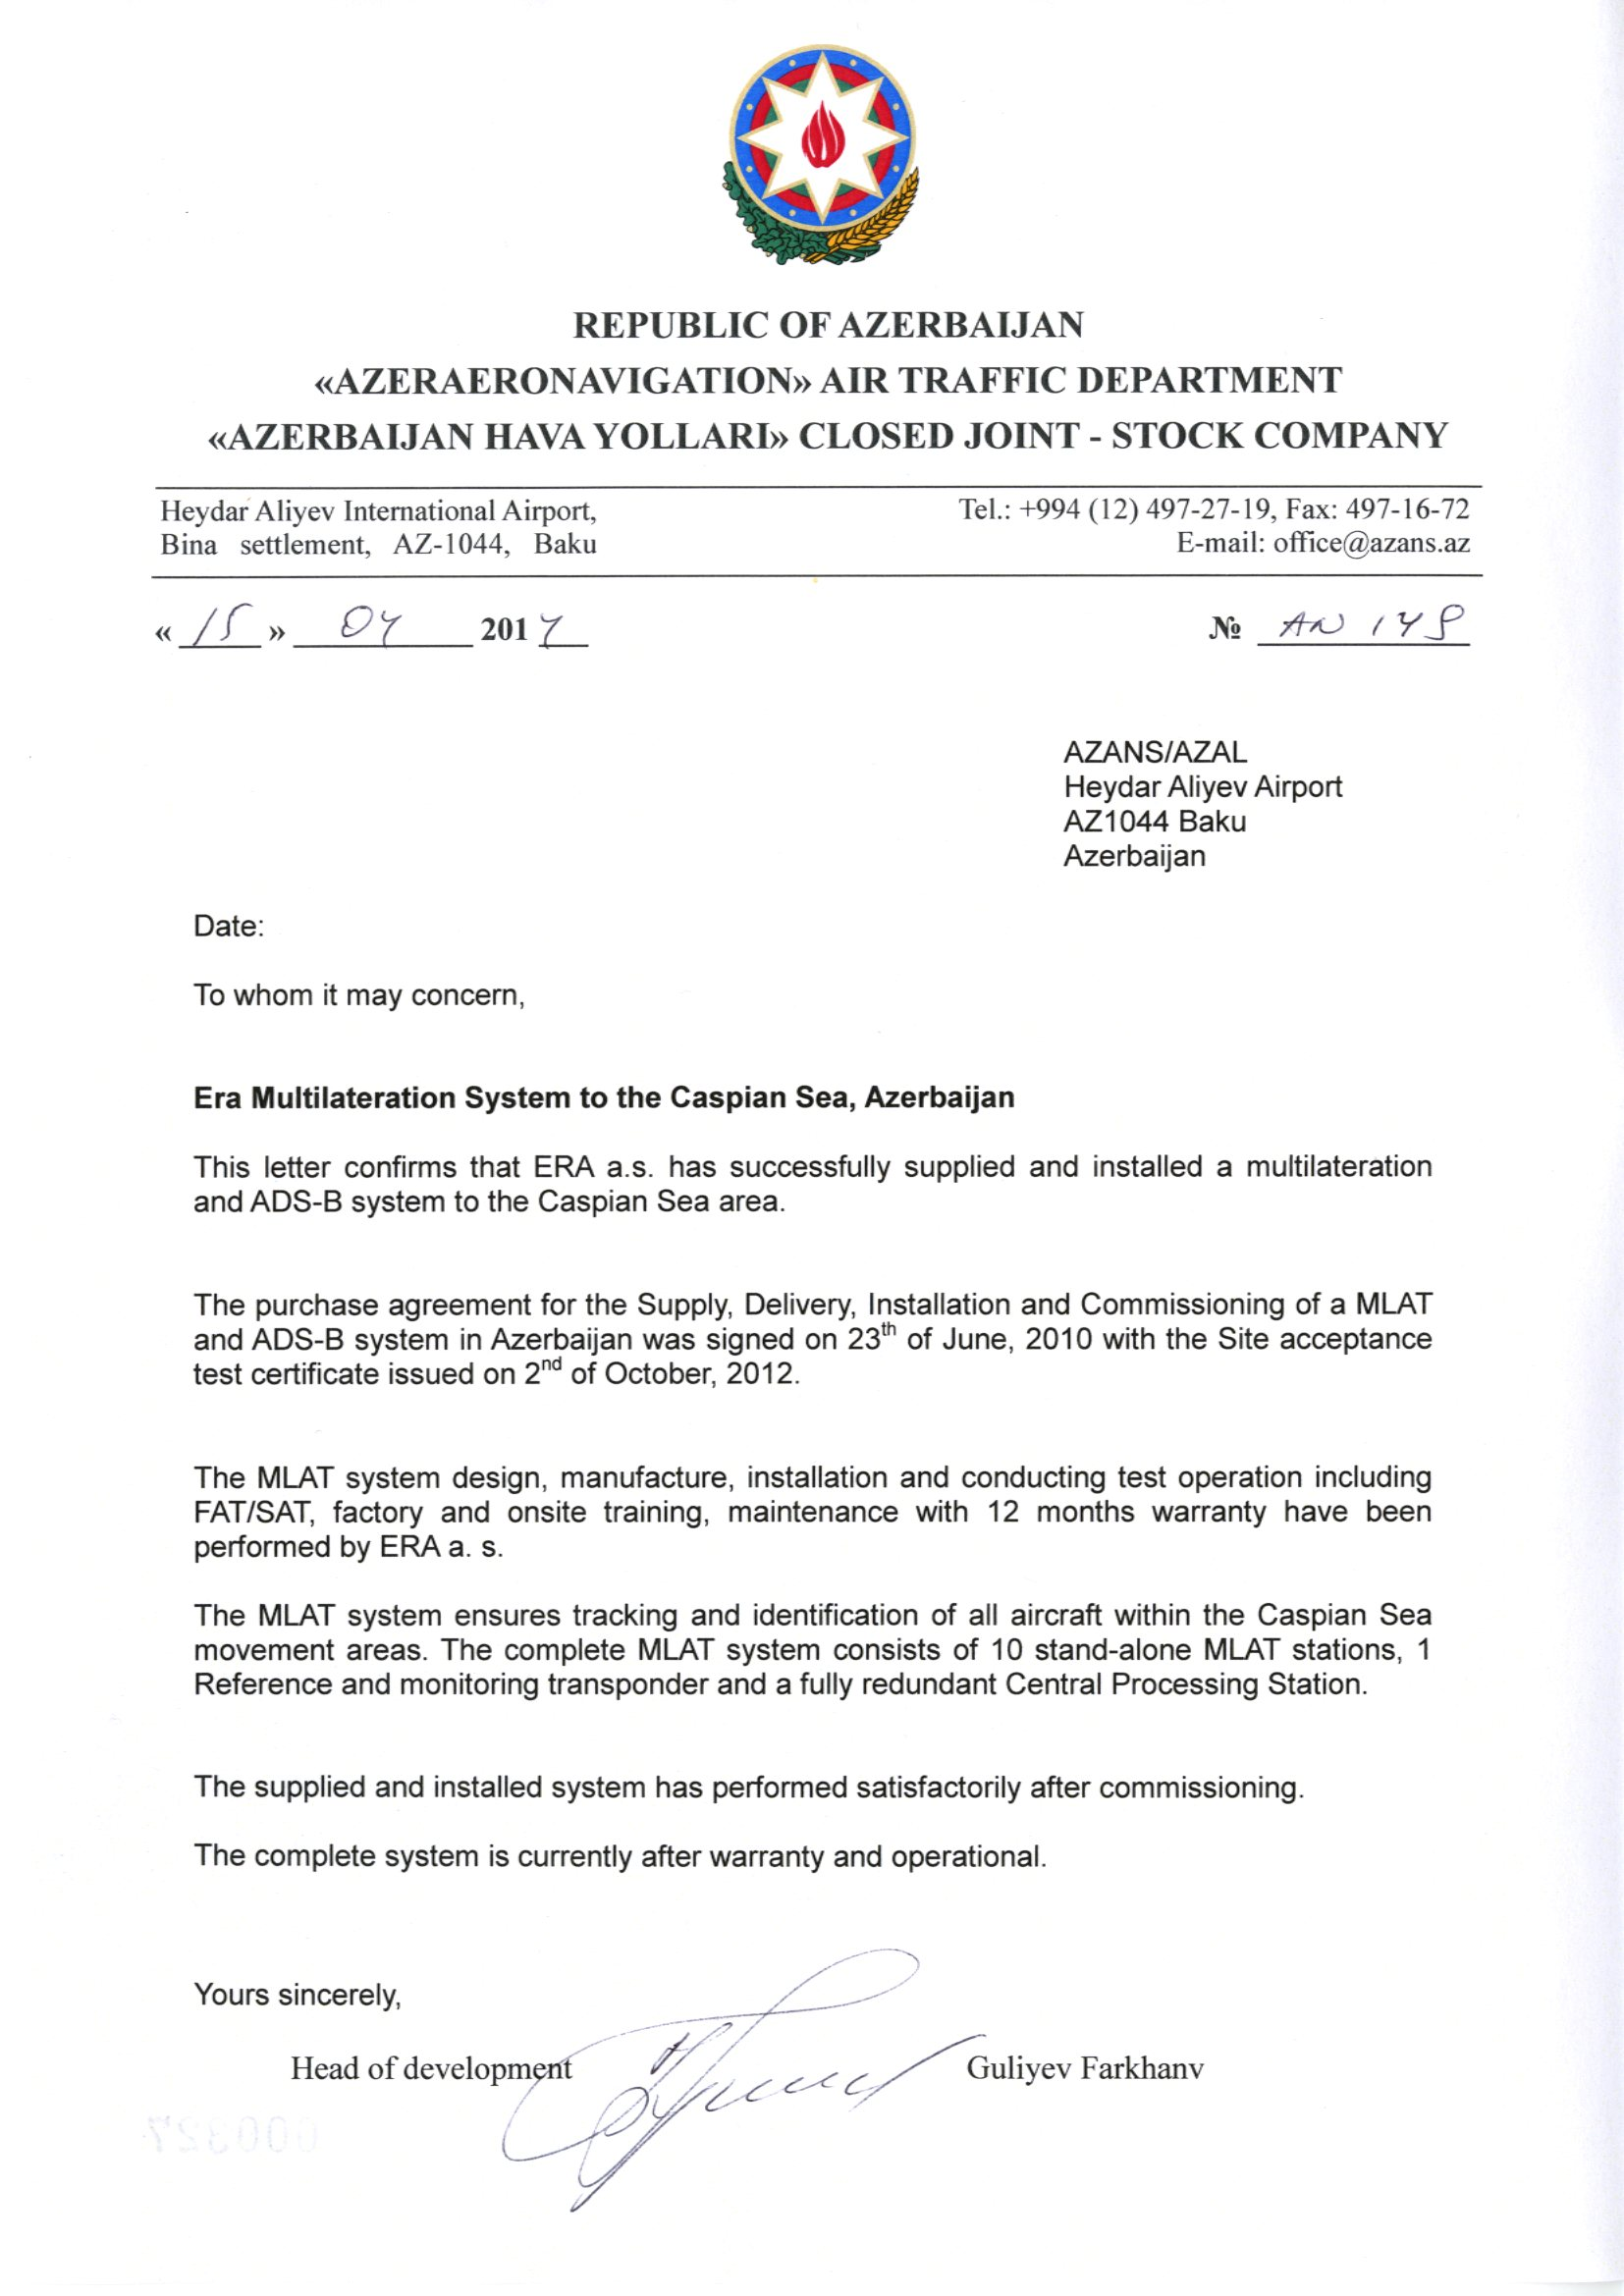 Company reference letter for another company militaryalicious company reference letter for another company spiritdancerdesigns Gallery